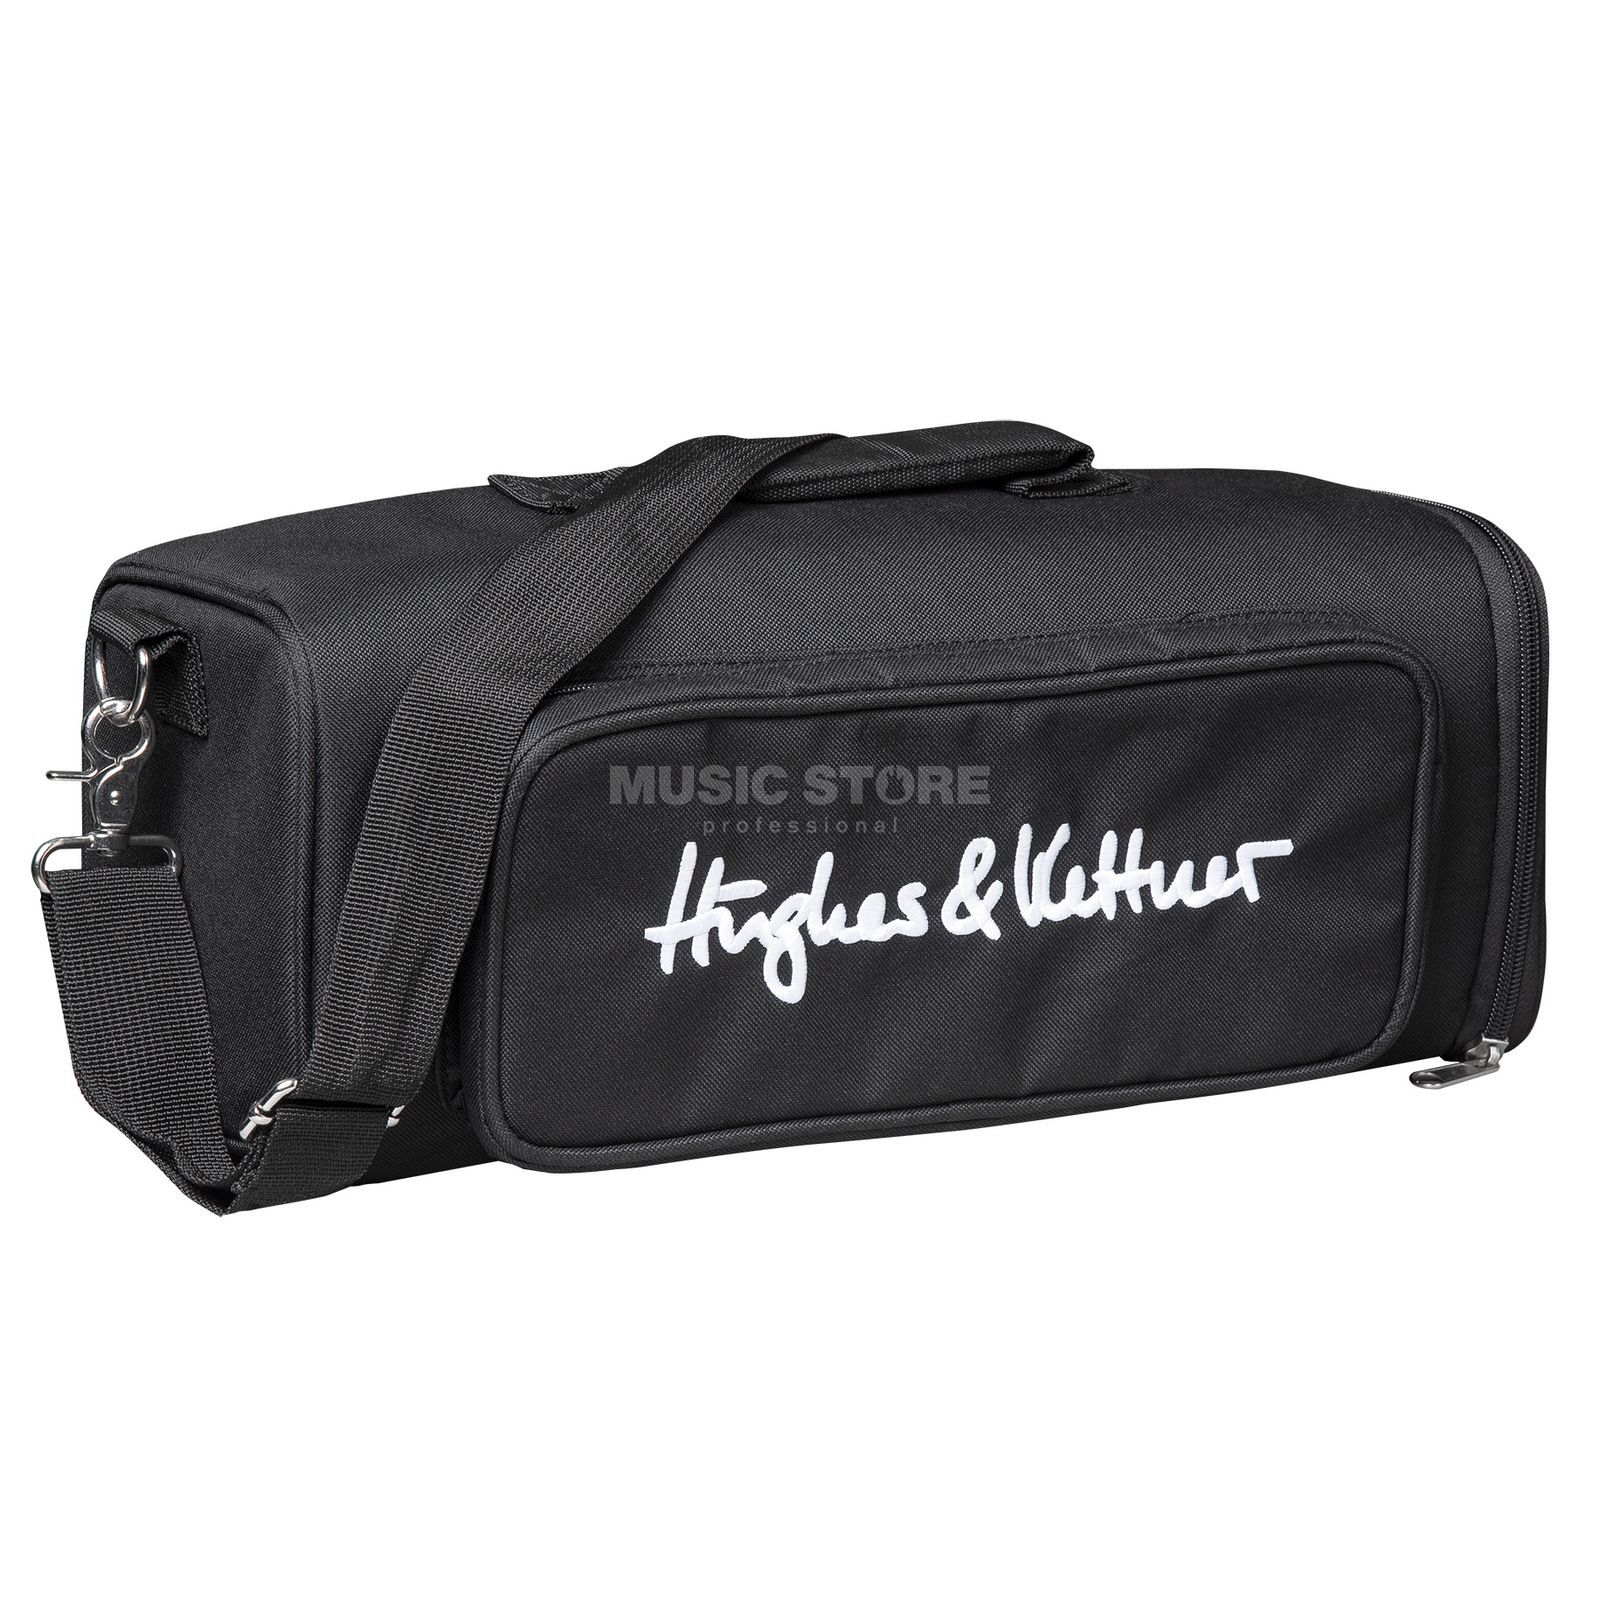 Hughes & Kettner Soft Bag Black Spirit 200 Изображение товара